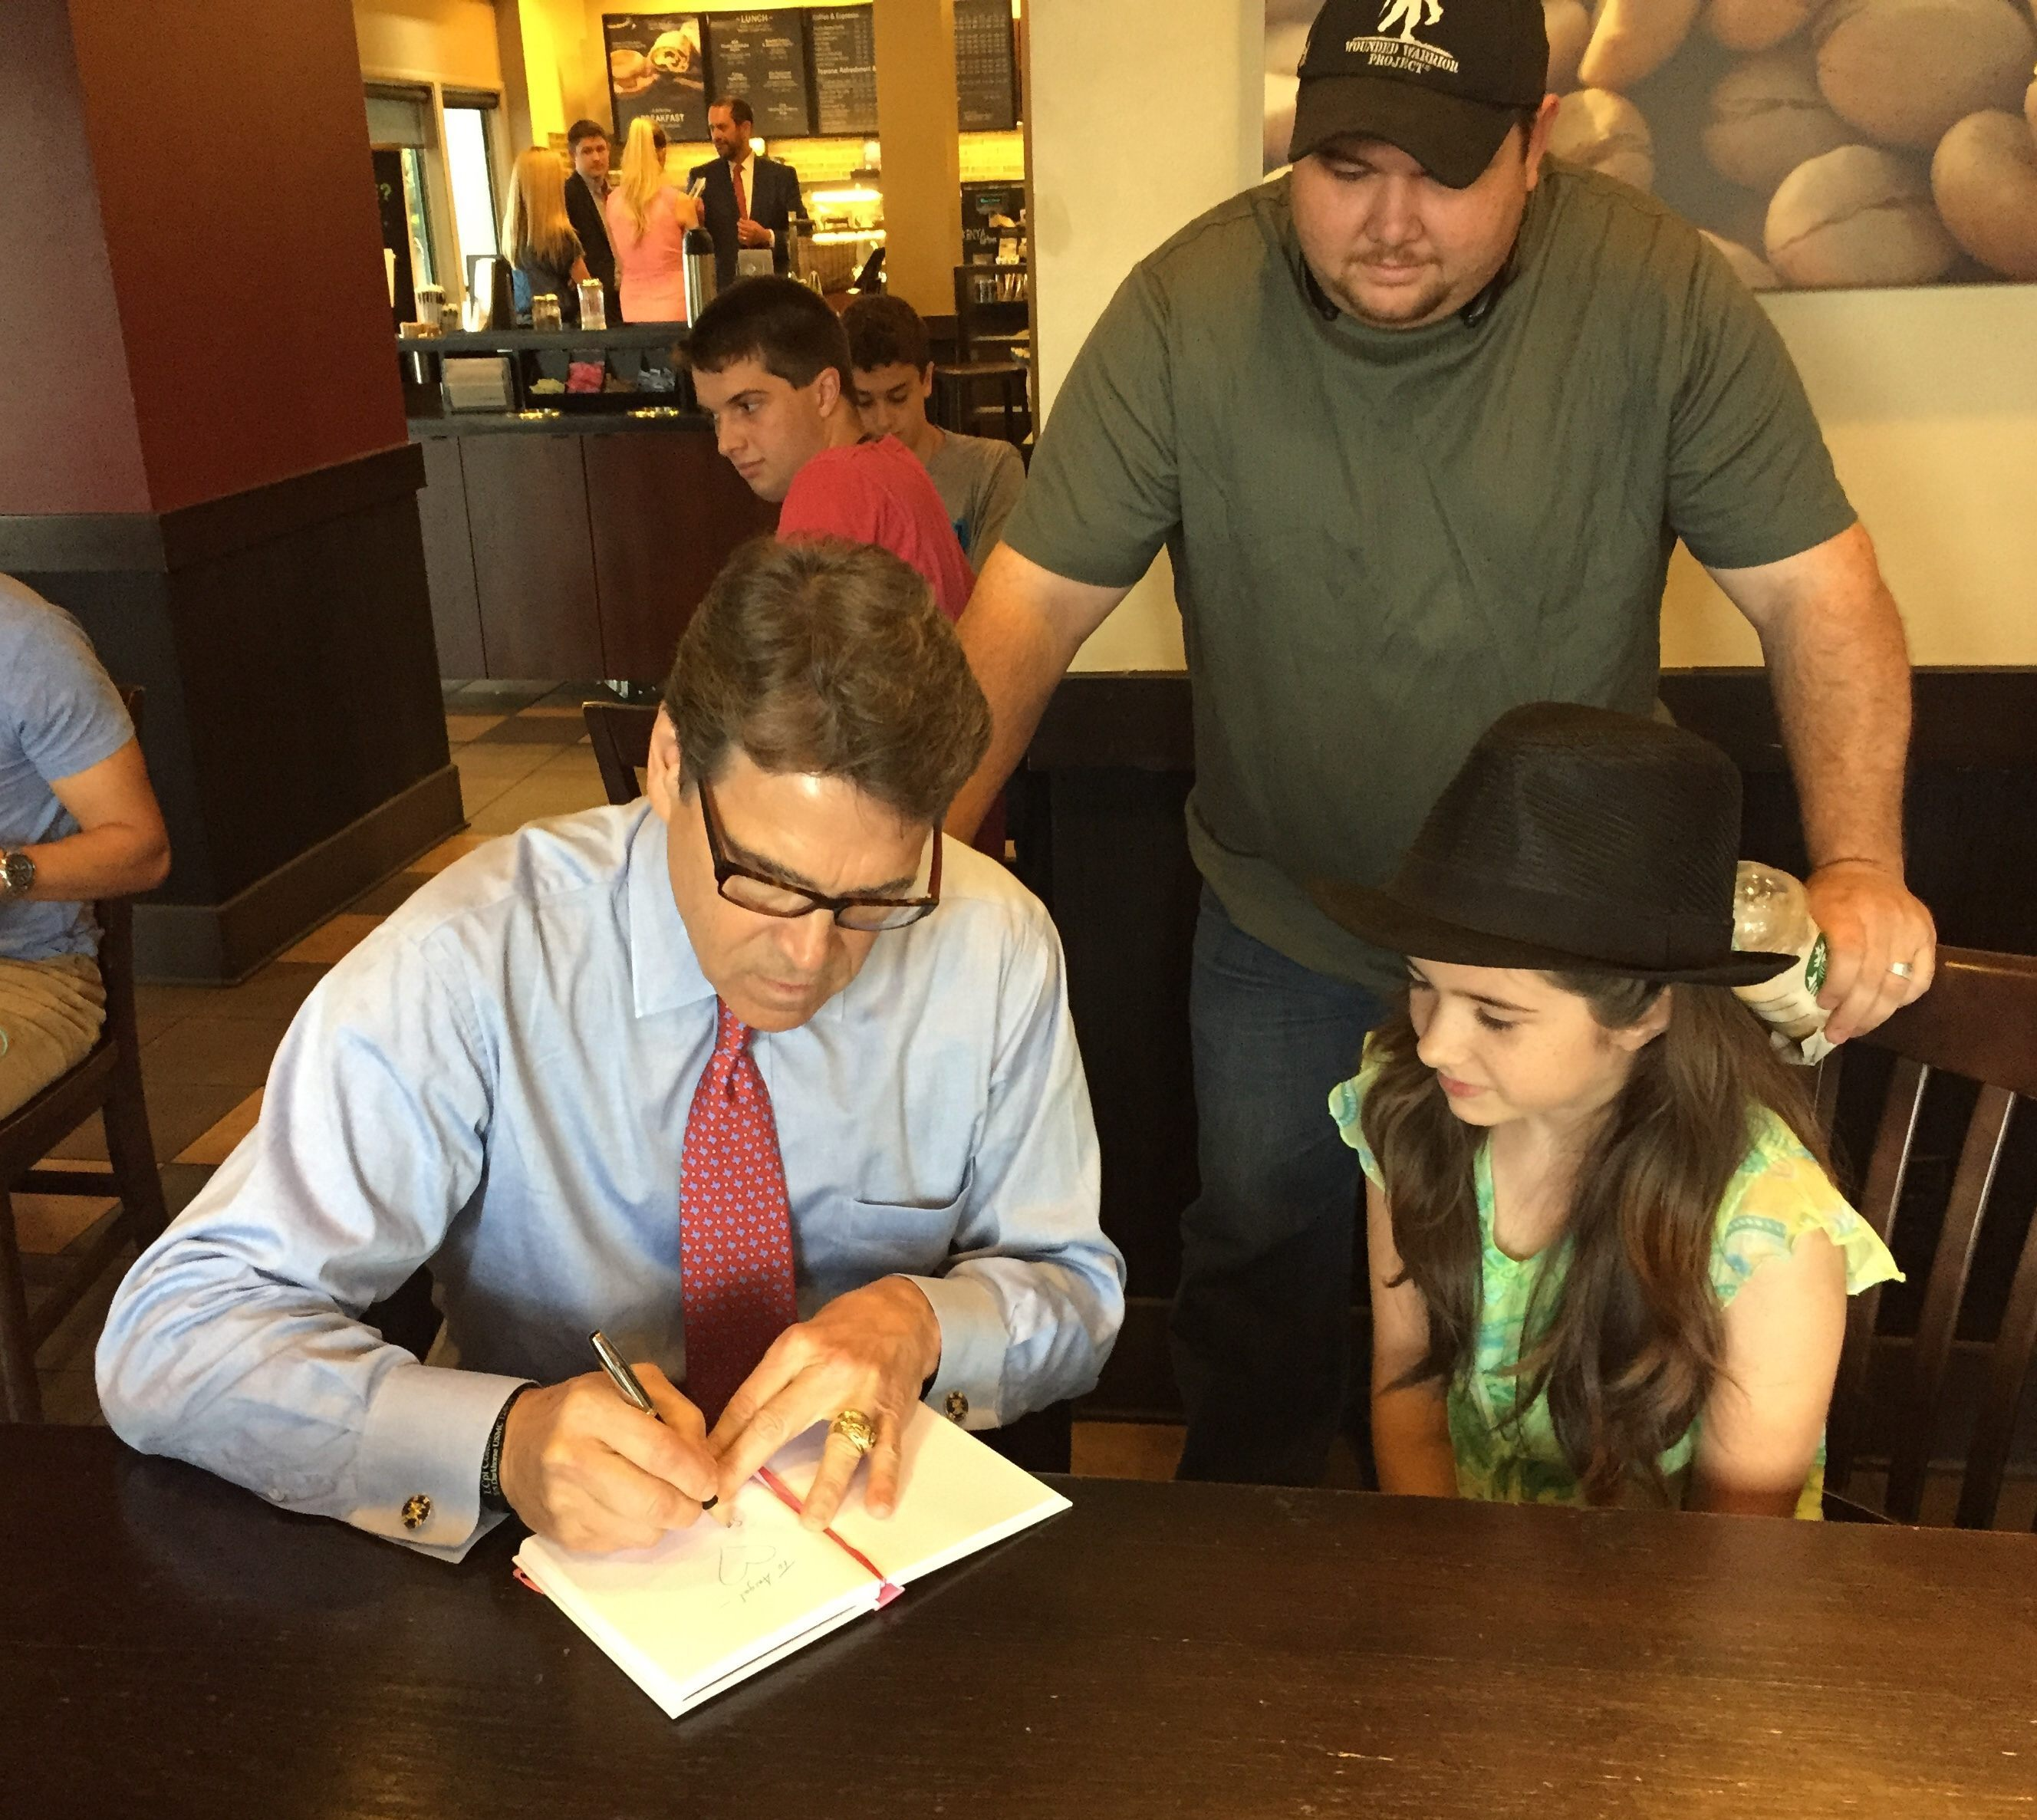 Gov. Perry signs an autograph for a young fan. Photo by Sarah Rumpf.